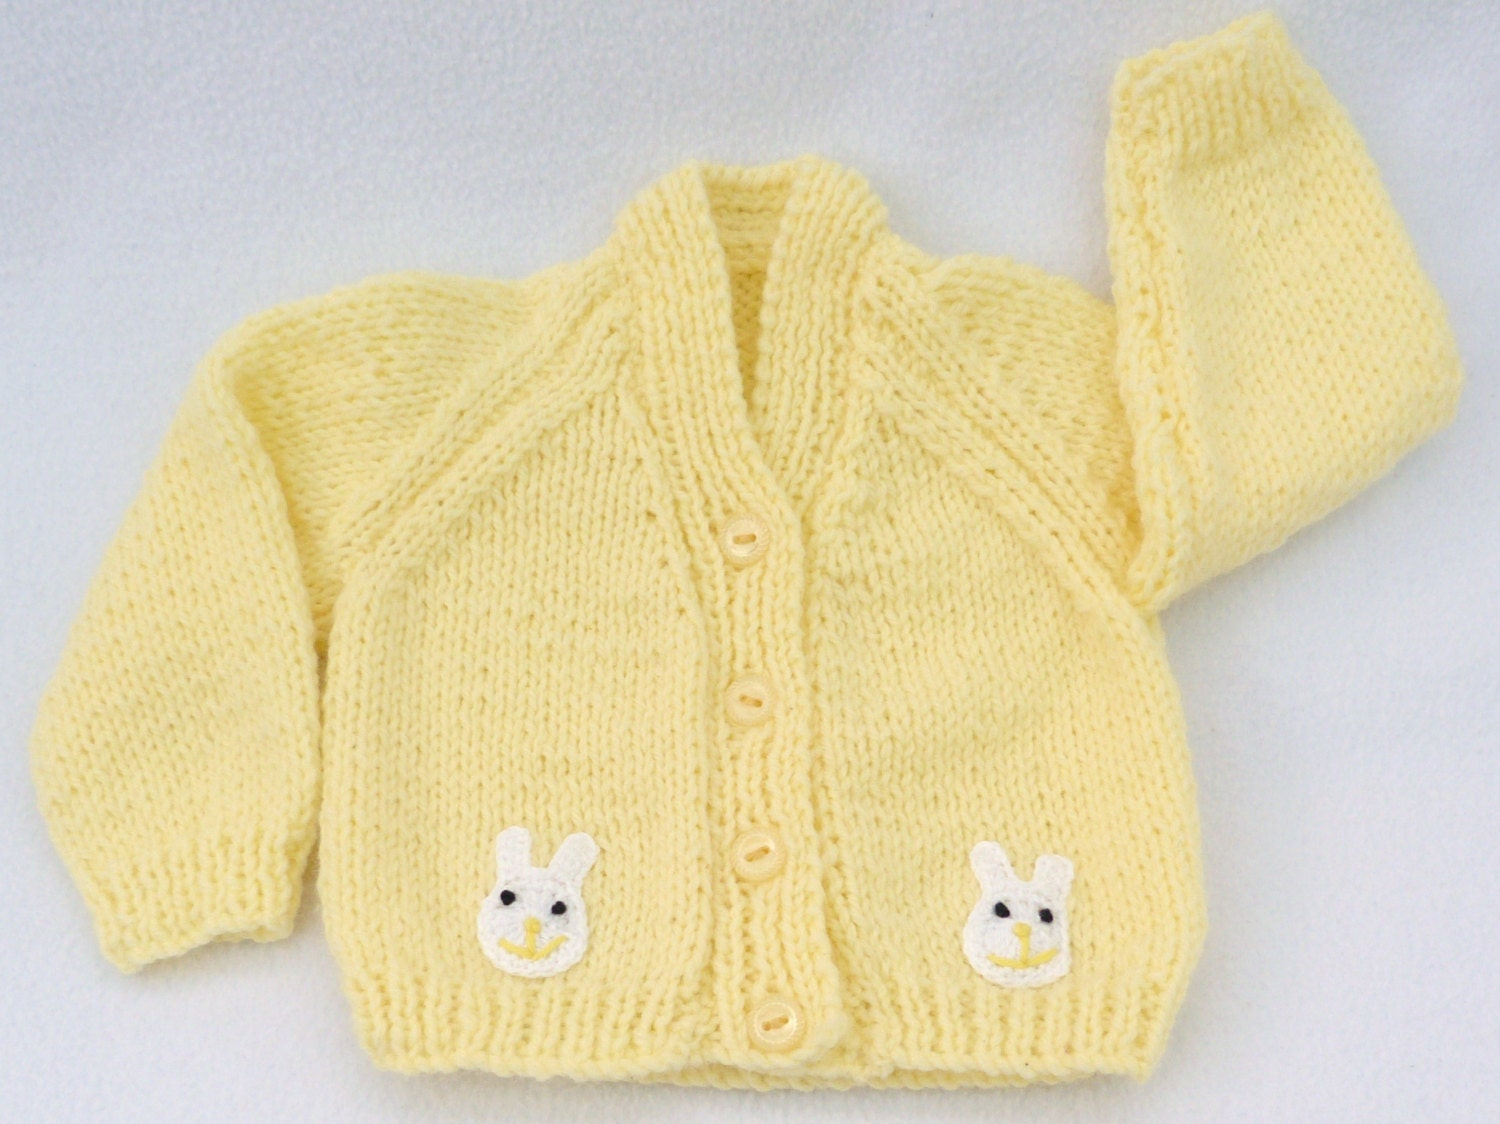 Knitted baby clothes Baby sweater Hand knitted tiny baby